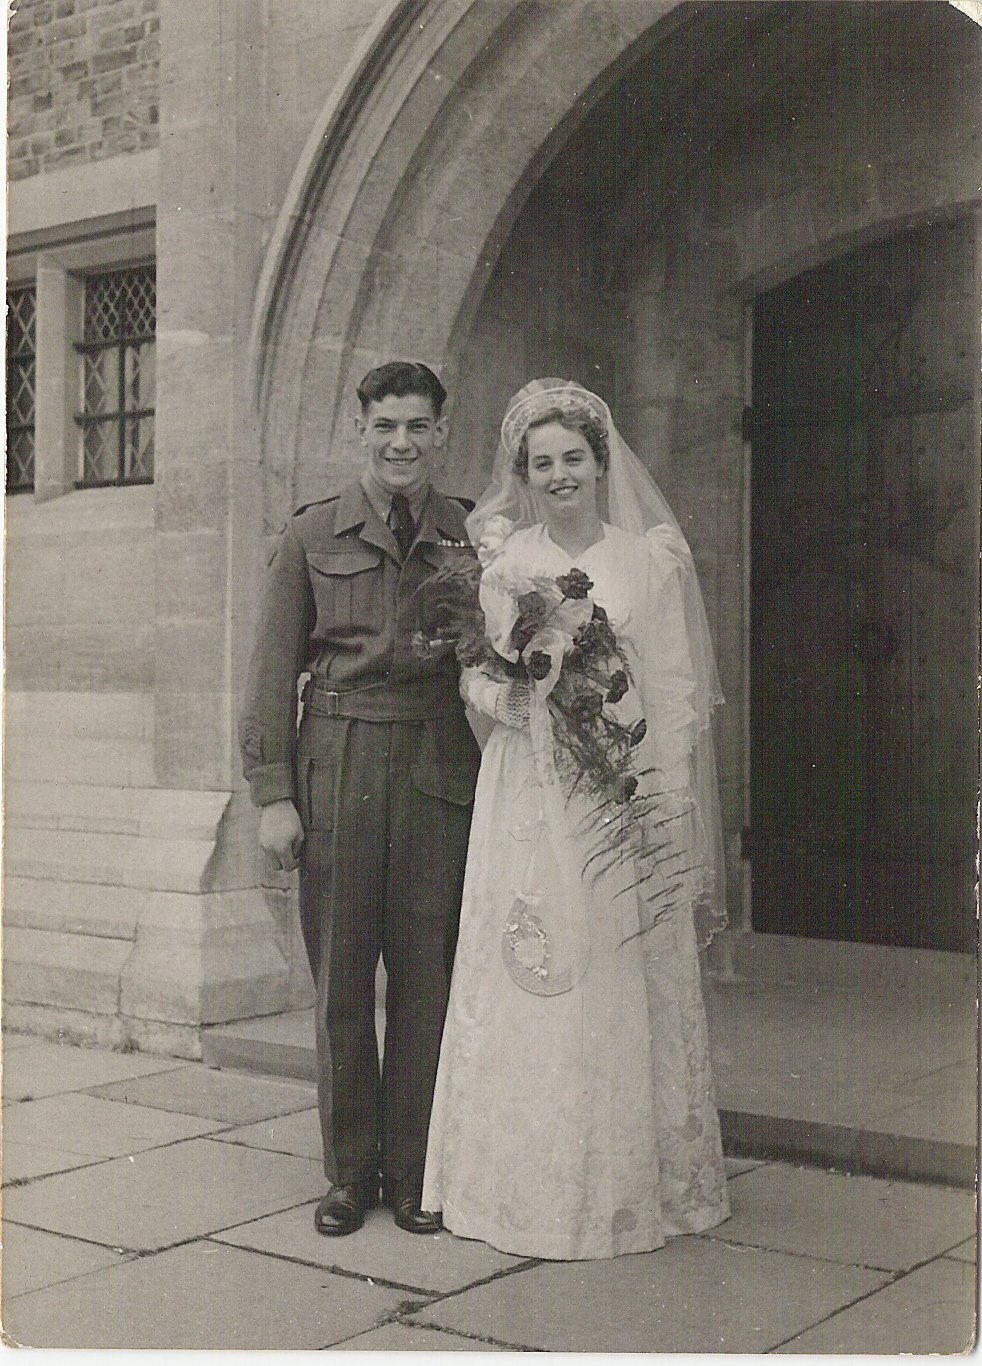 c. 1945. Olive Danyluk and her husband Mike on their wedding day in England during WWII.